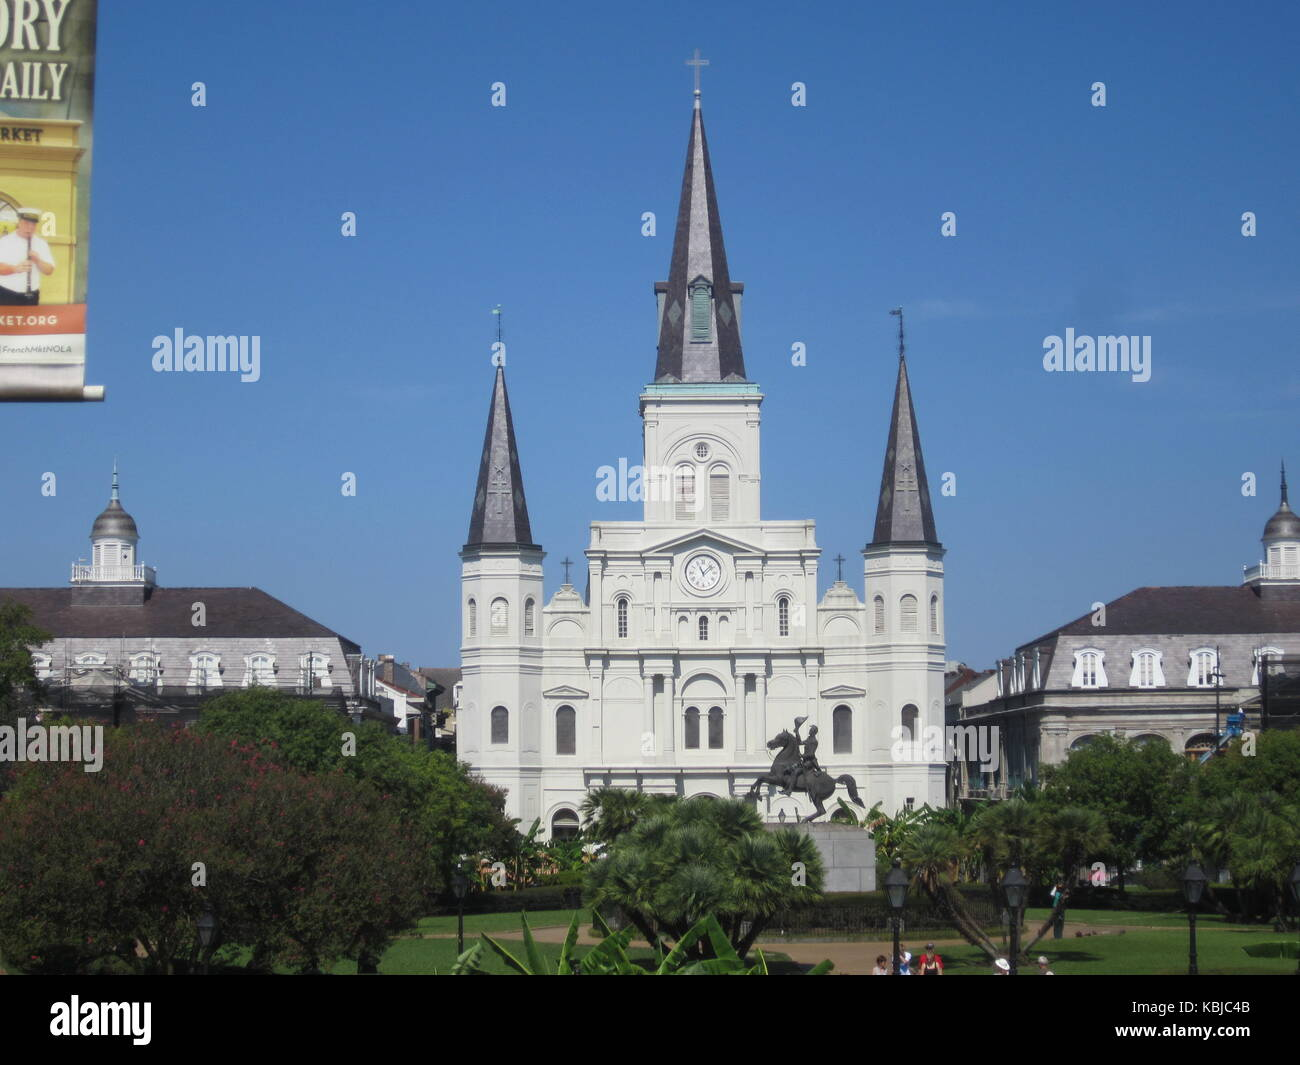 St louis cathedral New Orleans - Stock Image